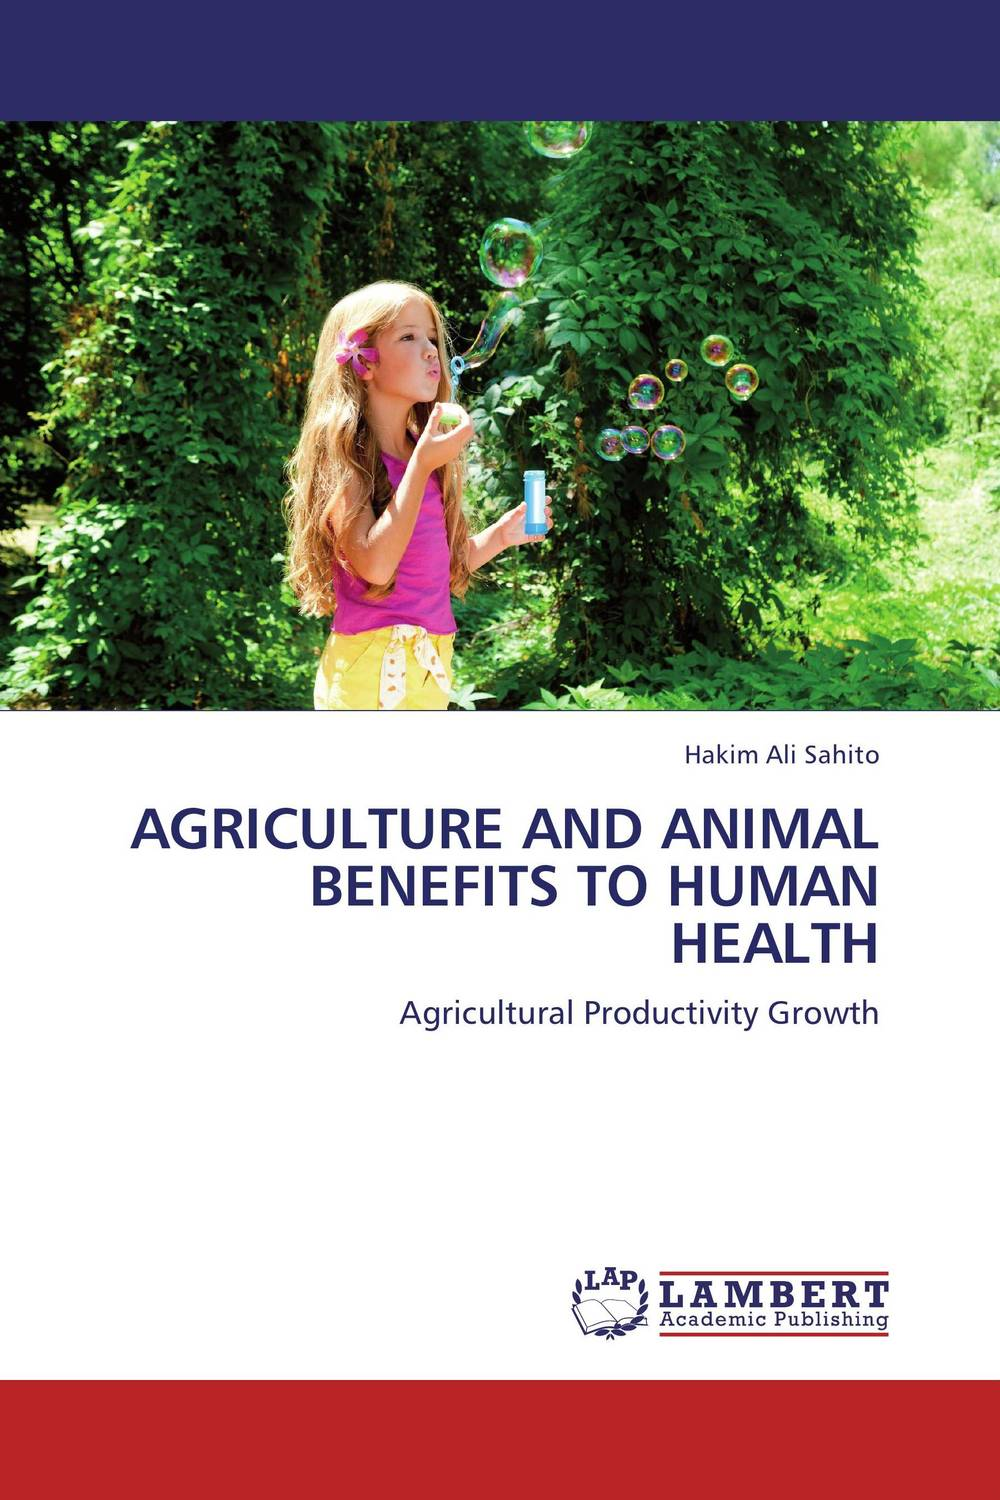 AGRICULTURE AND ANIMAL BENEFITS TO HUMAN HEALTH pastoralism and agriculture pennar basin india